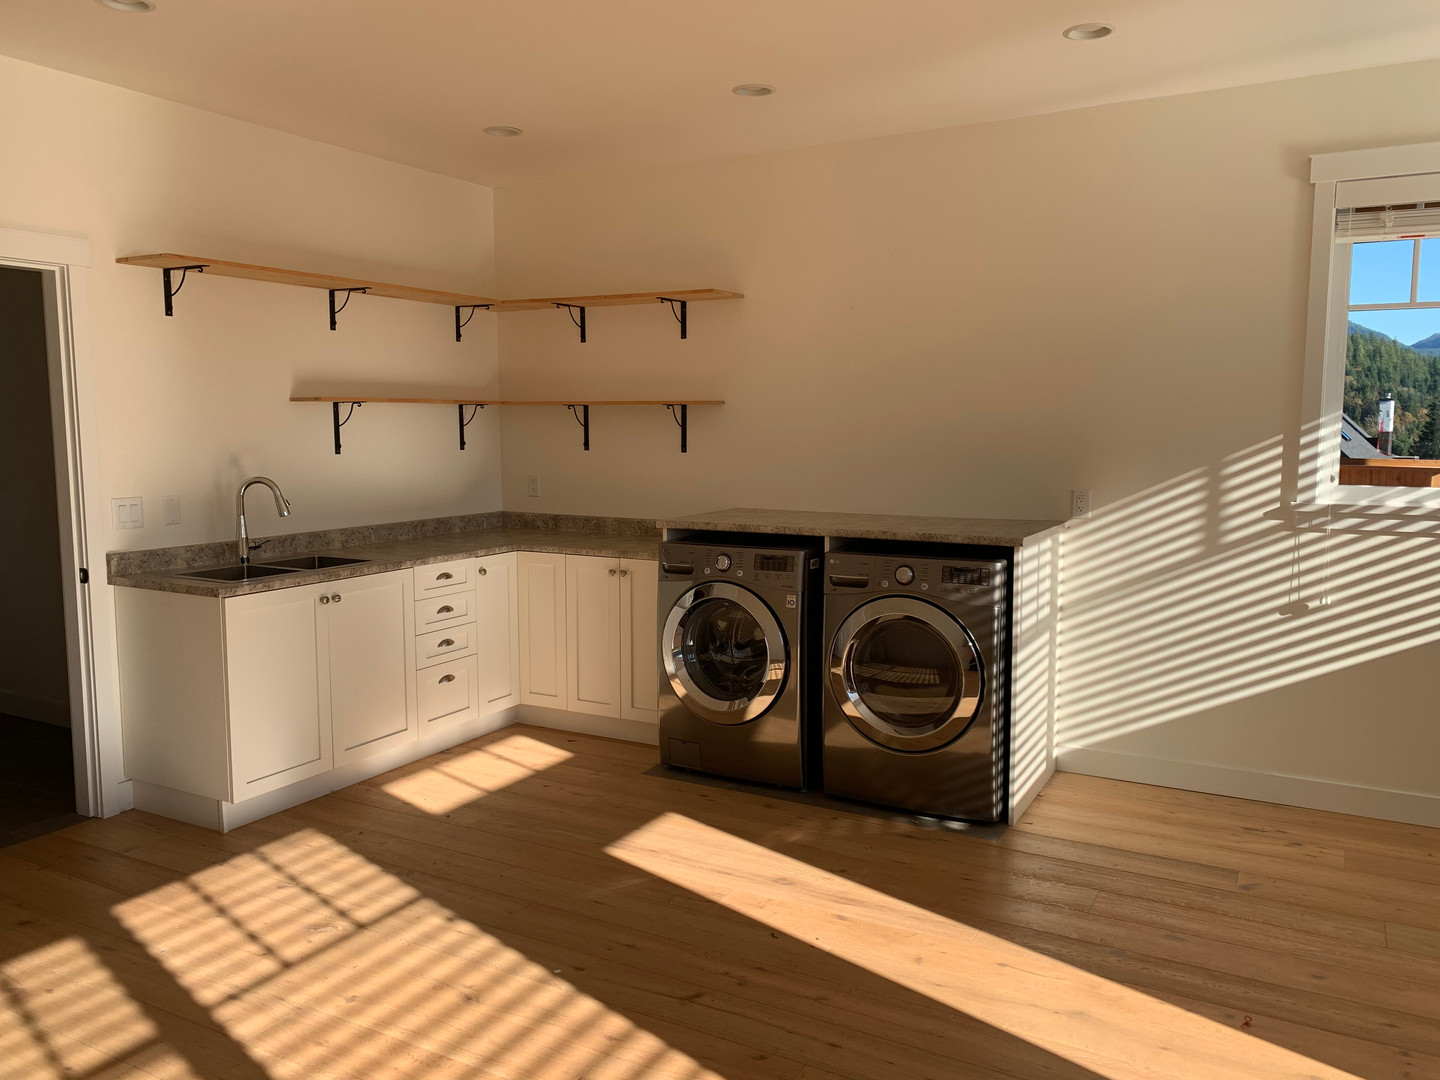 Laundry room with sun shining in